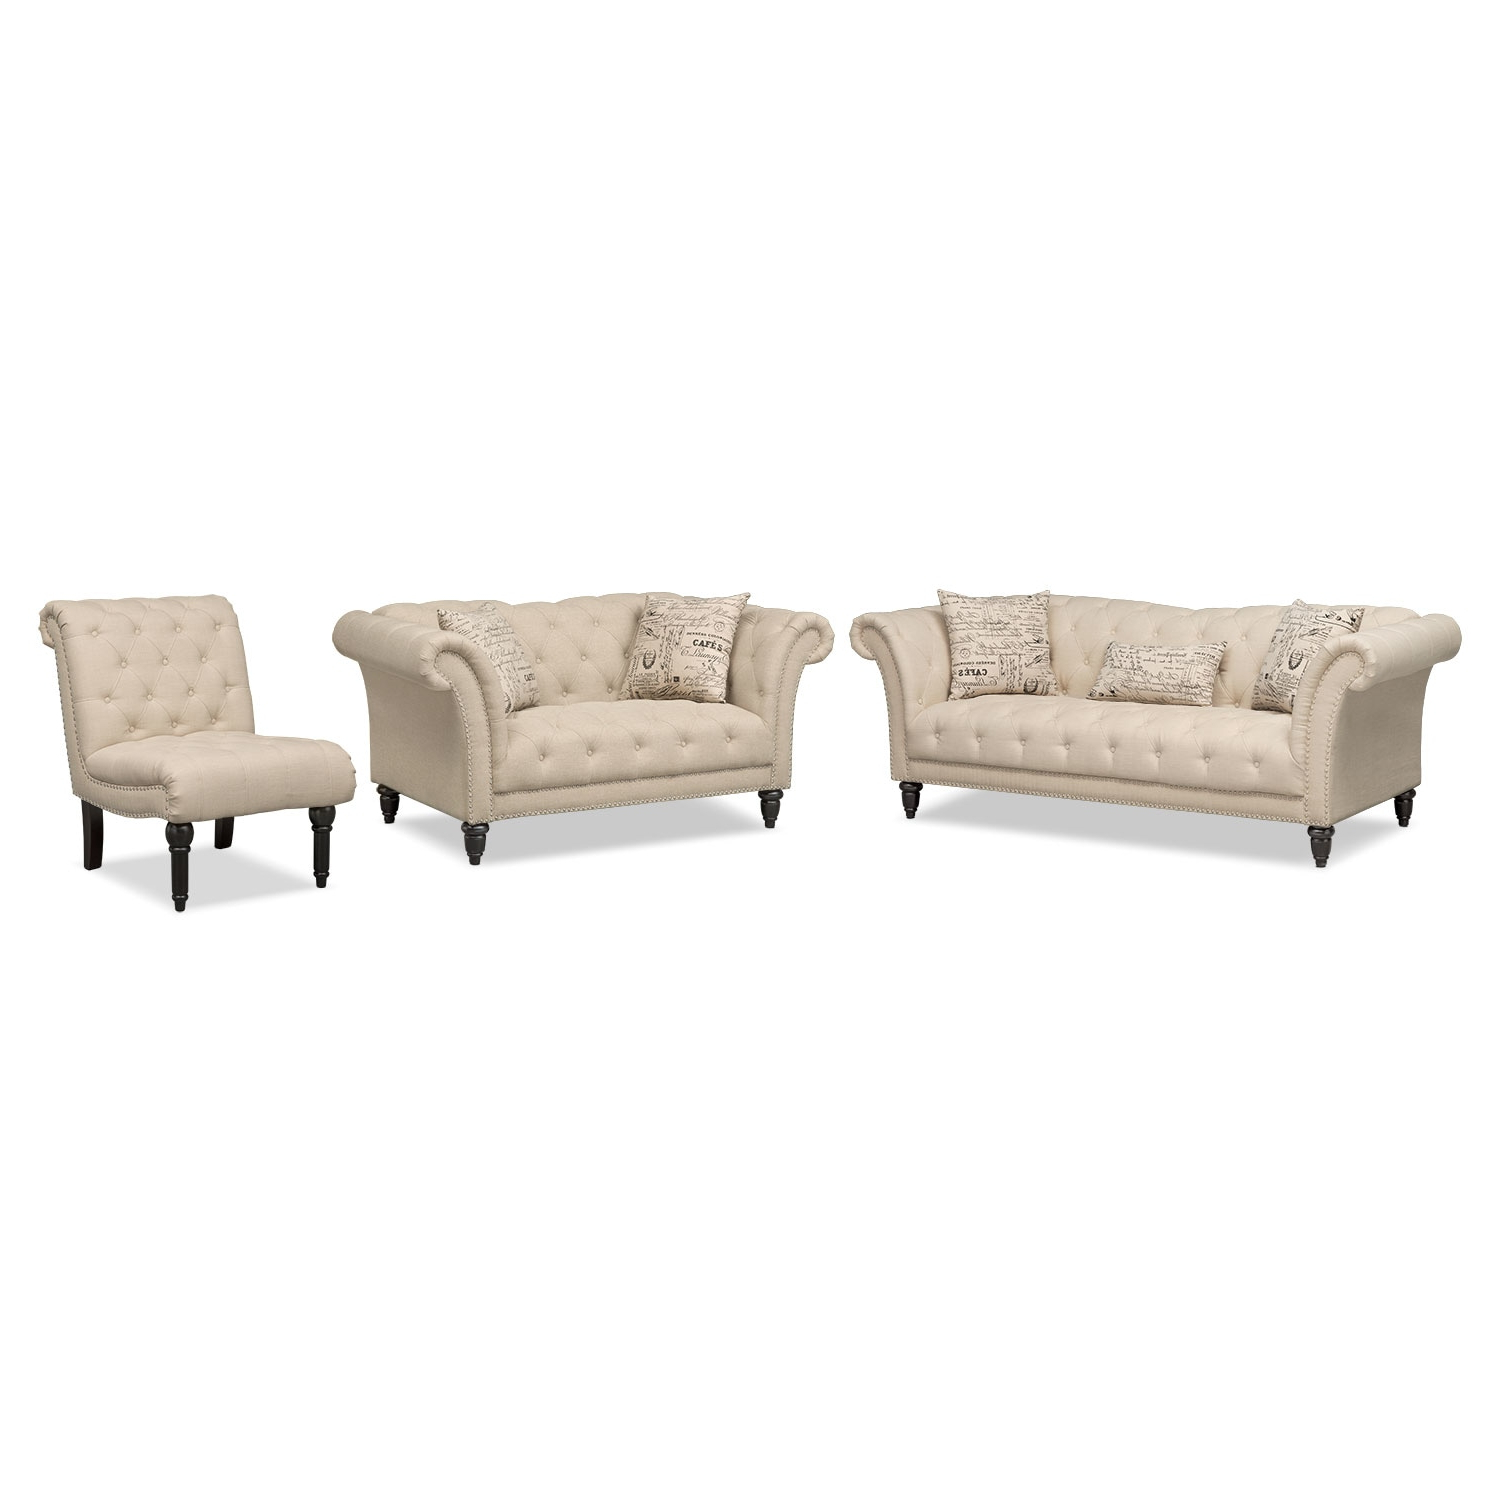 Best And Newest Marisol Sofa, Loveseat And Armless Chair Set (Gallery 7 of 20)